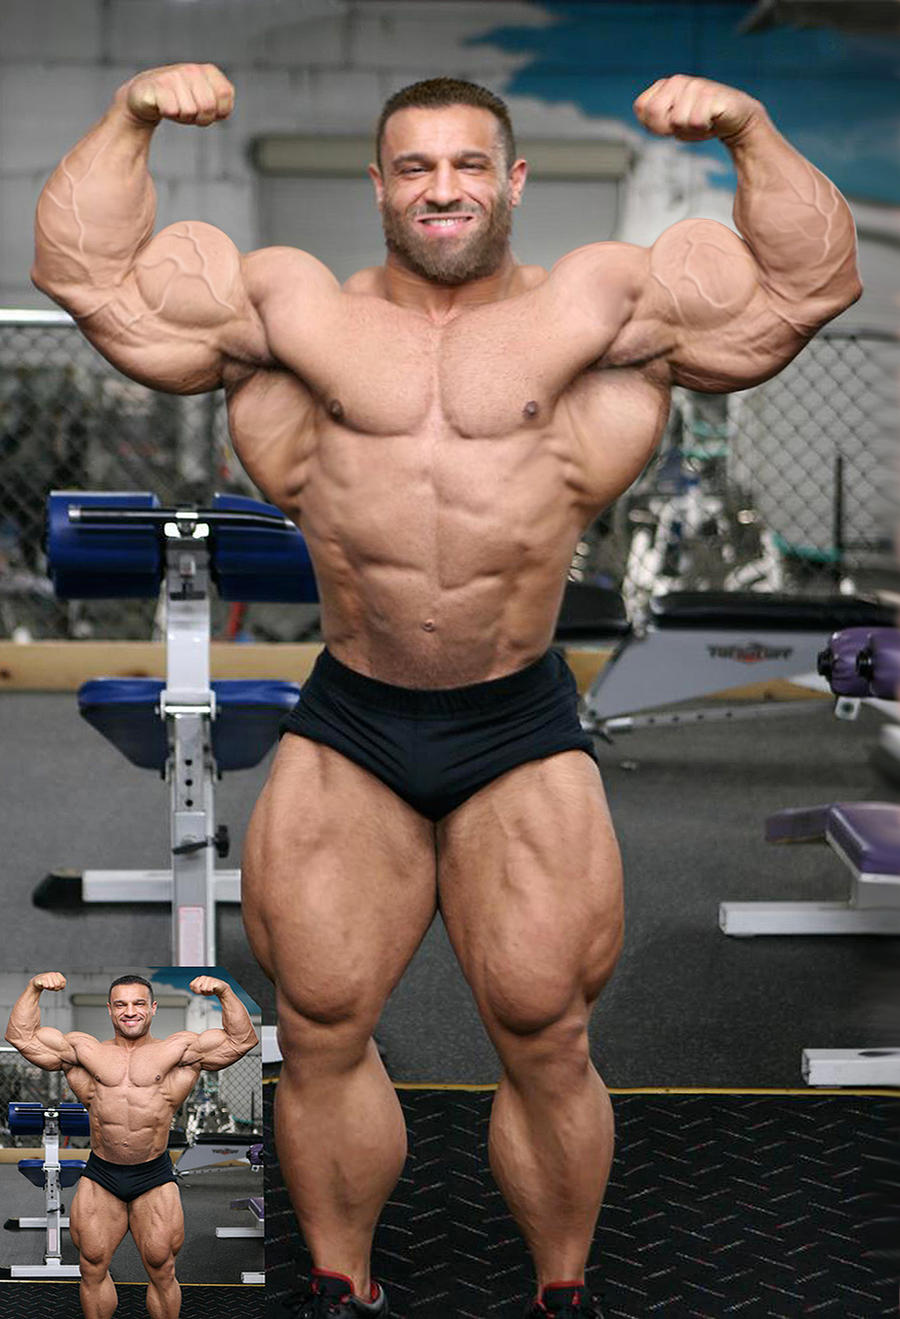 Morphed Muscle by Blathering